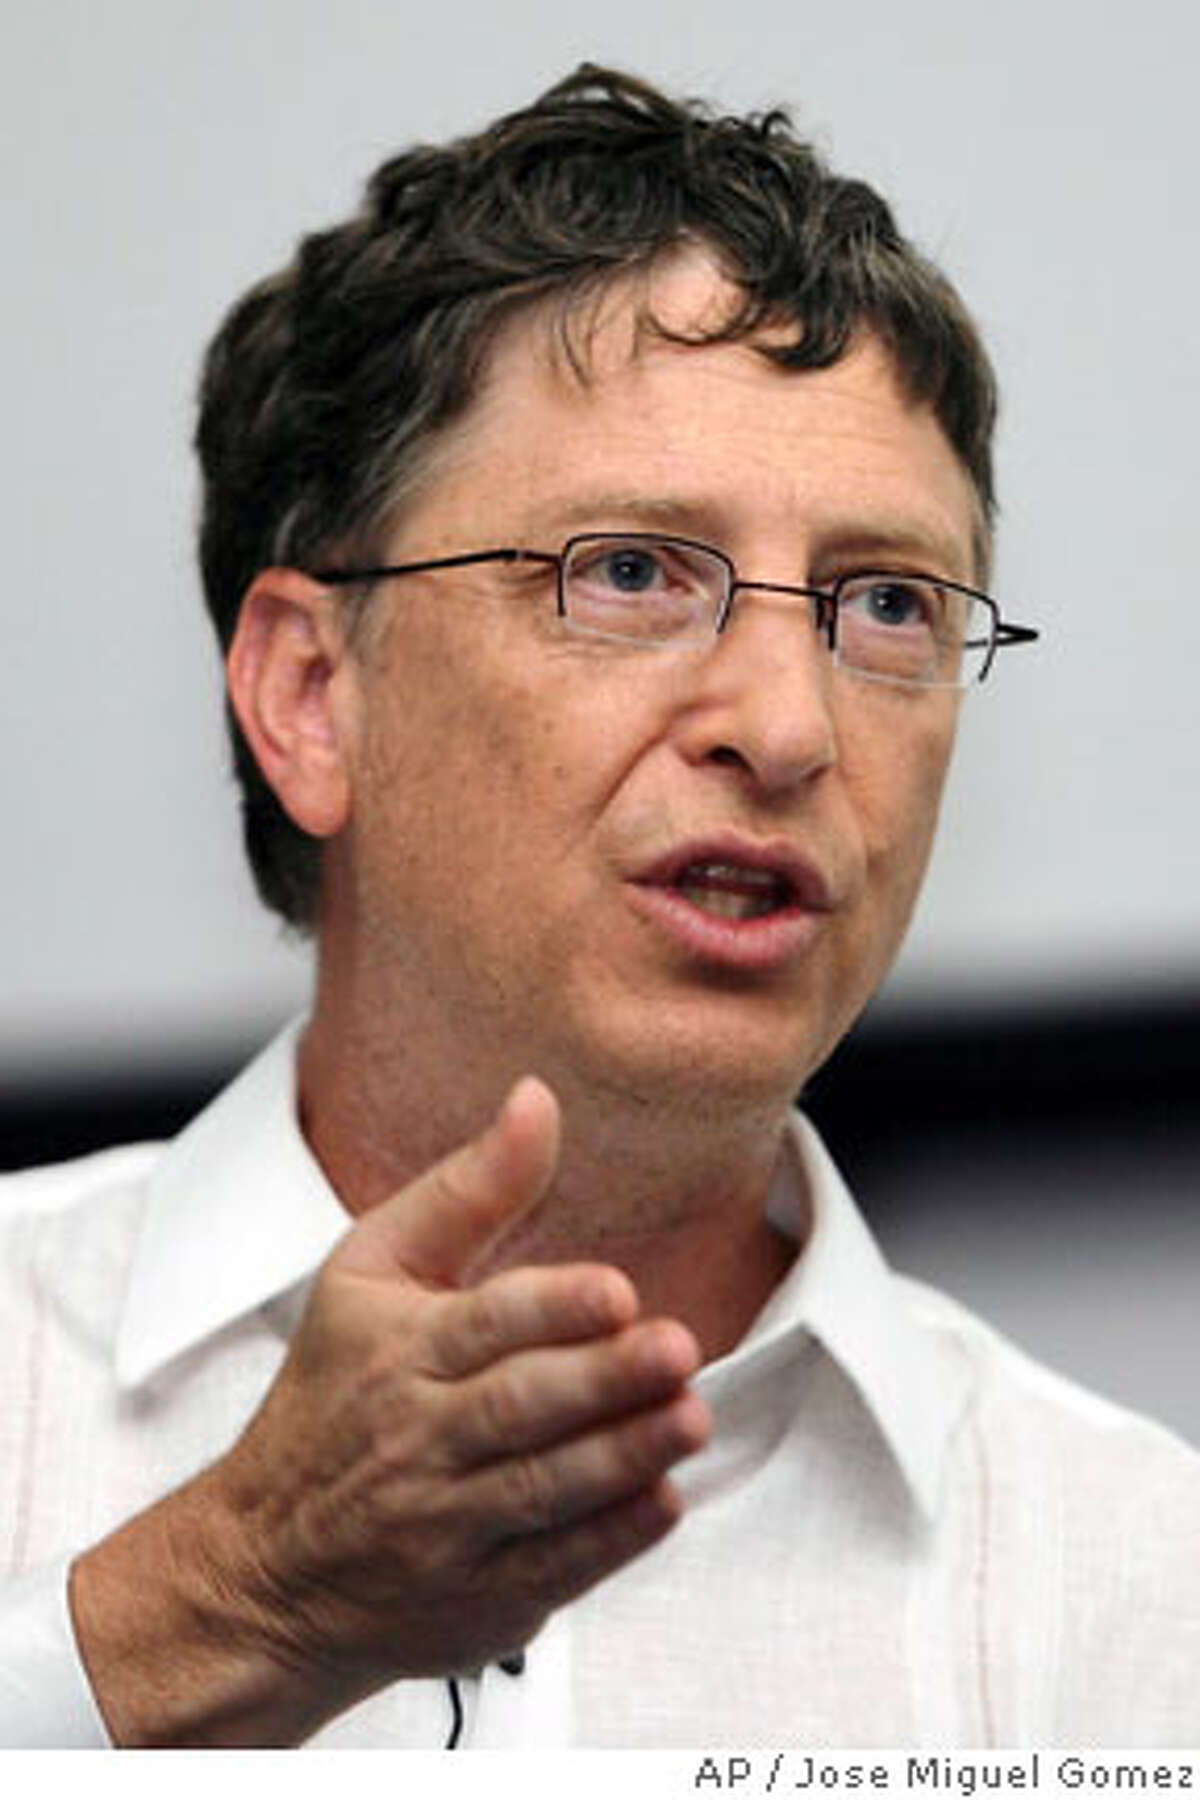 Microsoft chairman Bill Gates speaks during a conference at the 63rd Inter-American Press Association meeting in Cartagena March 19, 2007. REUTERS/Jose Miguel Gomez (COLOMBIA) 0